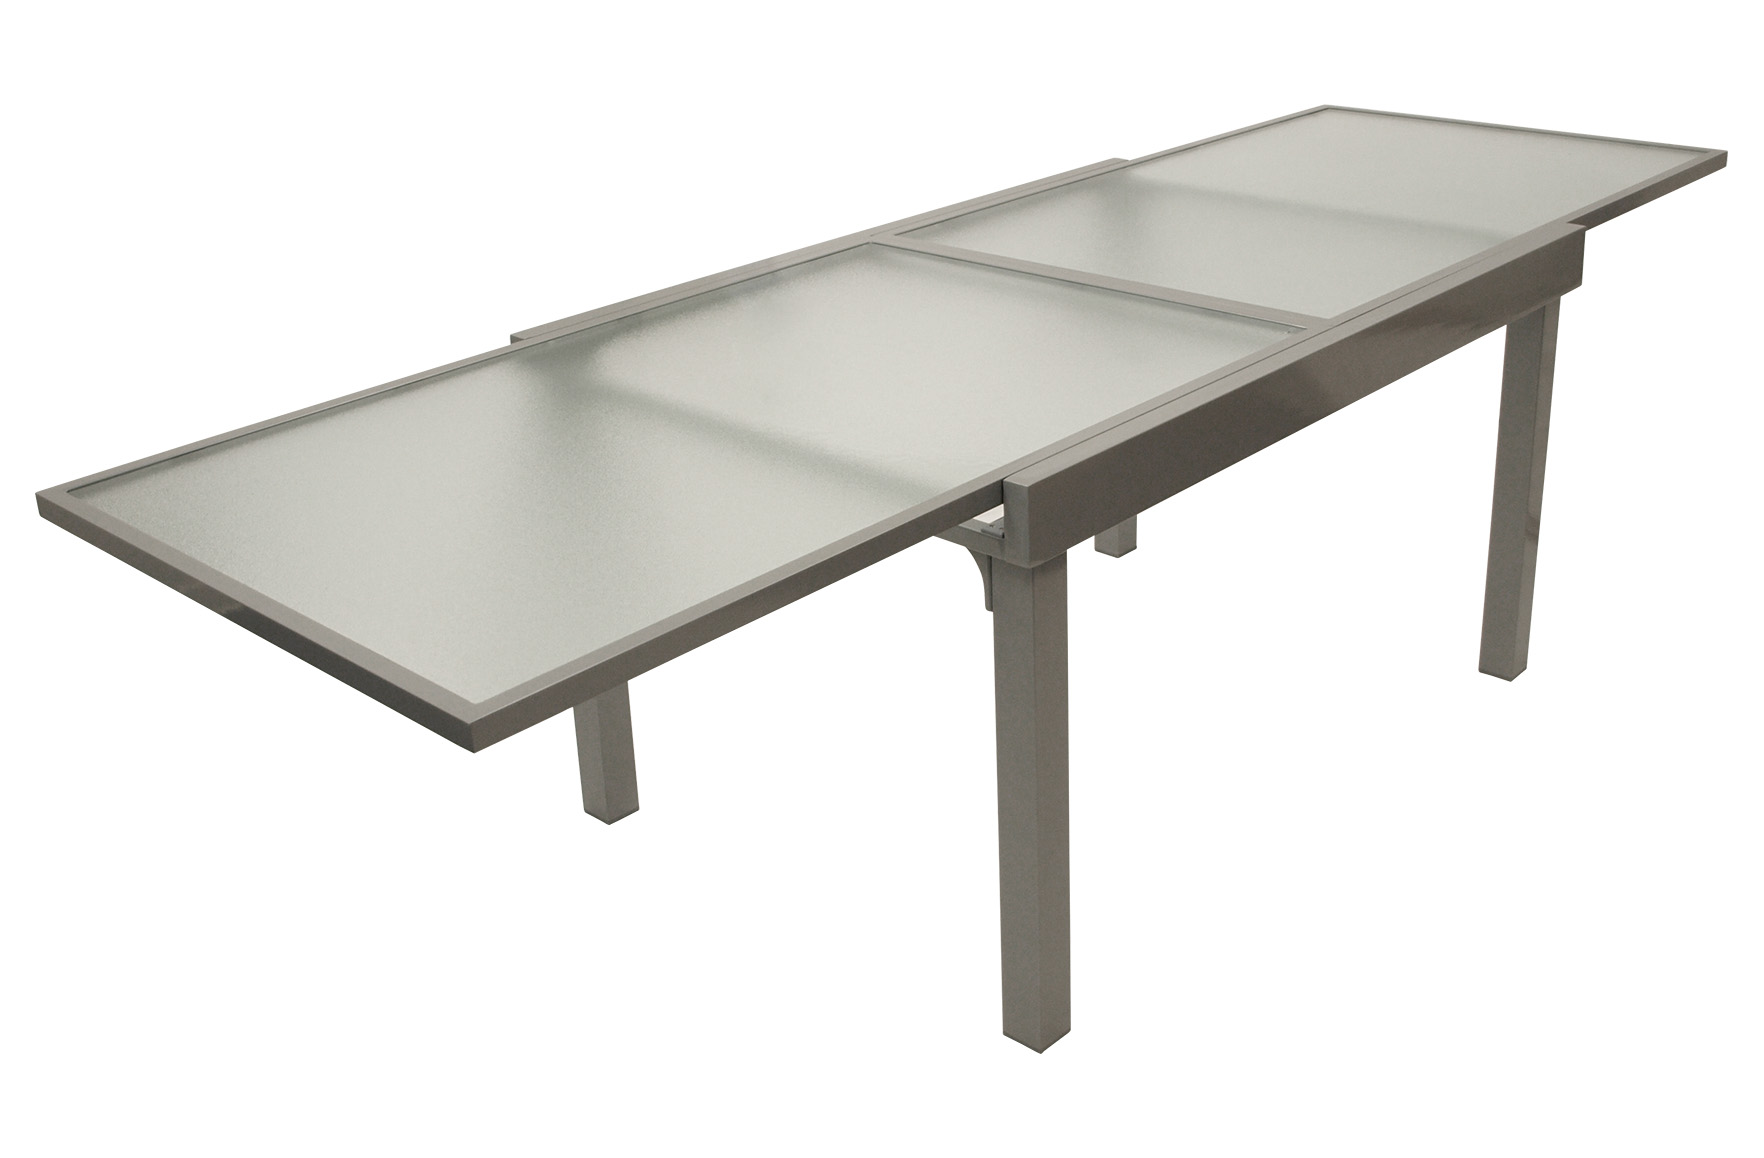 Affordable Gartentisch Ausziehbar Xcm Aluminium Glas Silber With Gartentisch  120 X 70 Alu Awesome Design